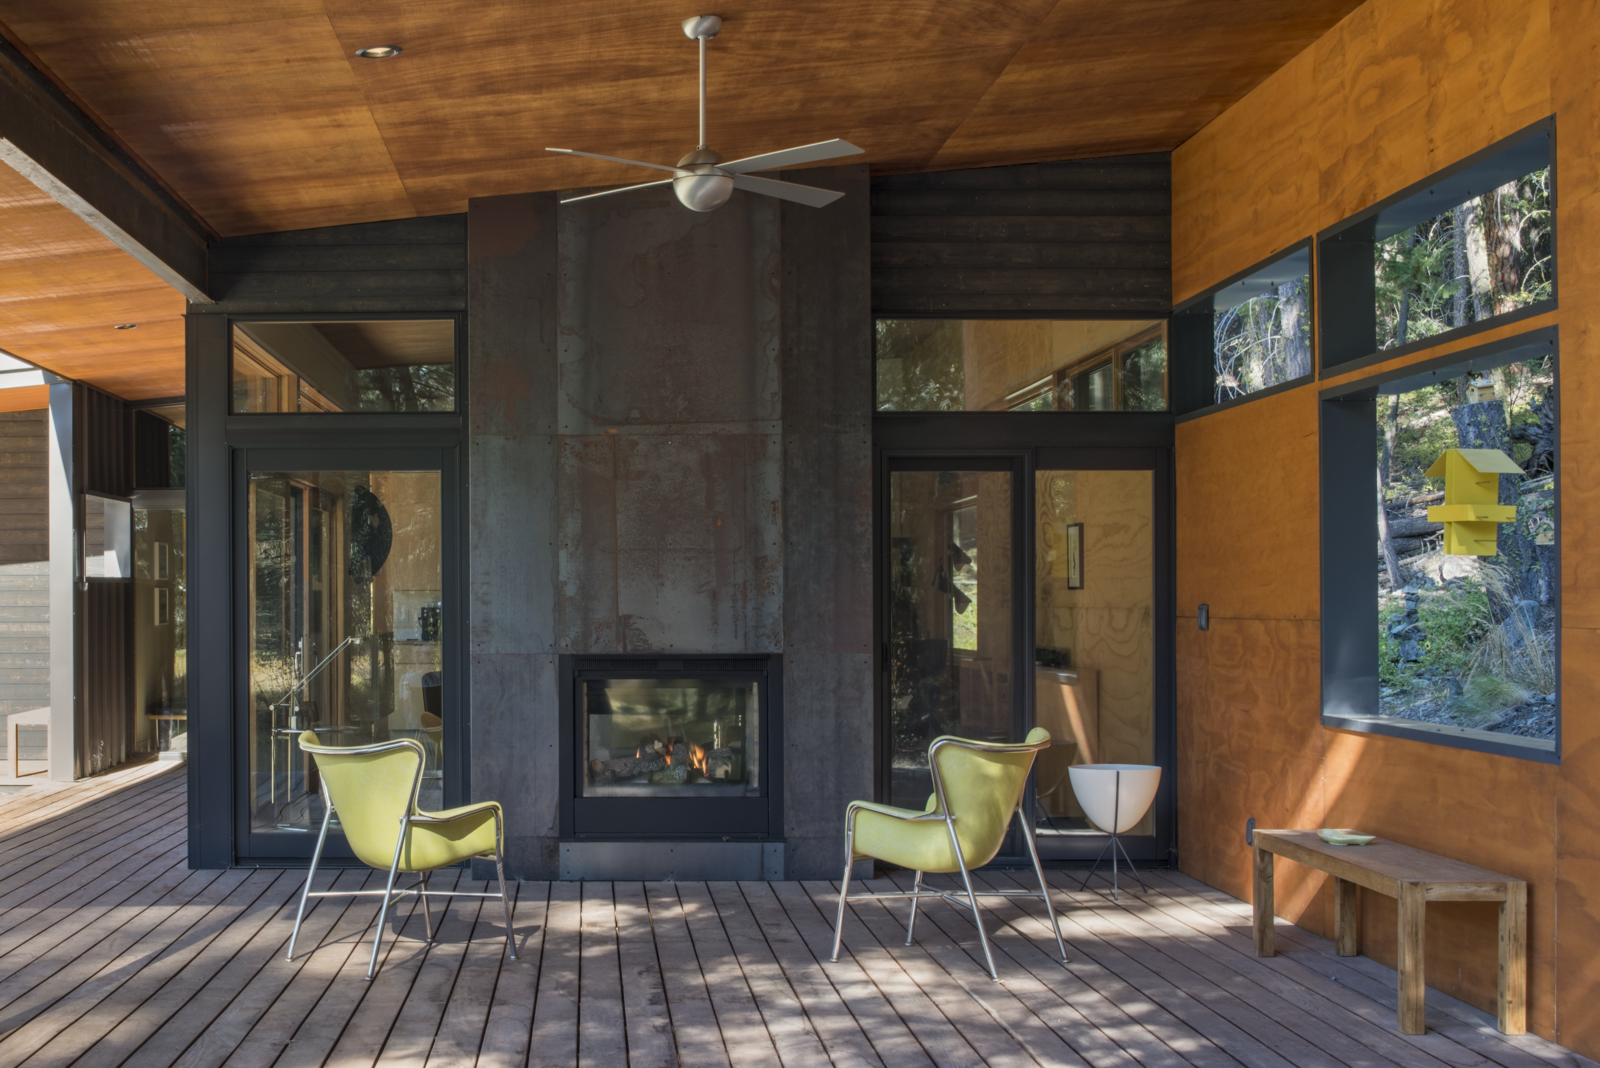 Photo 4 of 10 in A Lean Cabin in Washington Dismantles the Indoor/Outdoor Divide